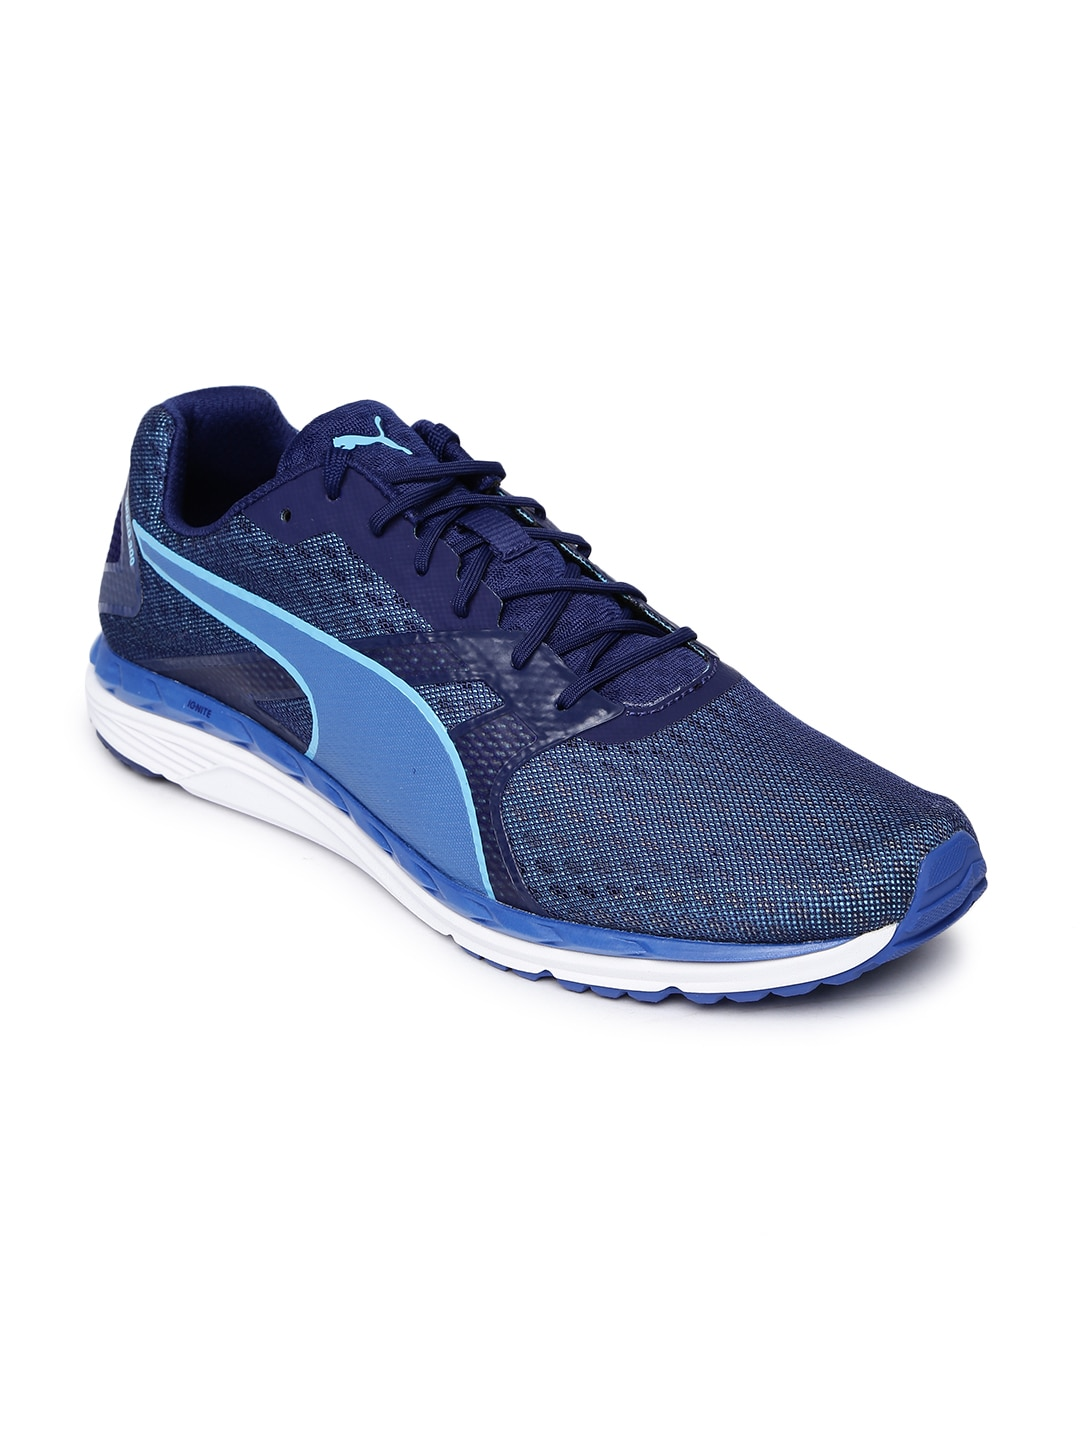 4b3c6dea09a1 Buy Puma Men Blue Speed 100 R IGNITE Running Shoes - Sports Shoes ...